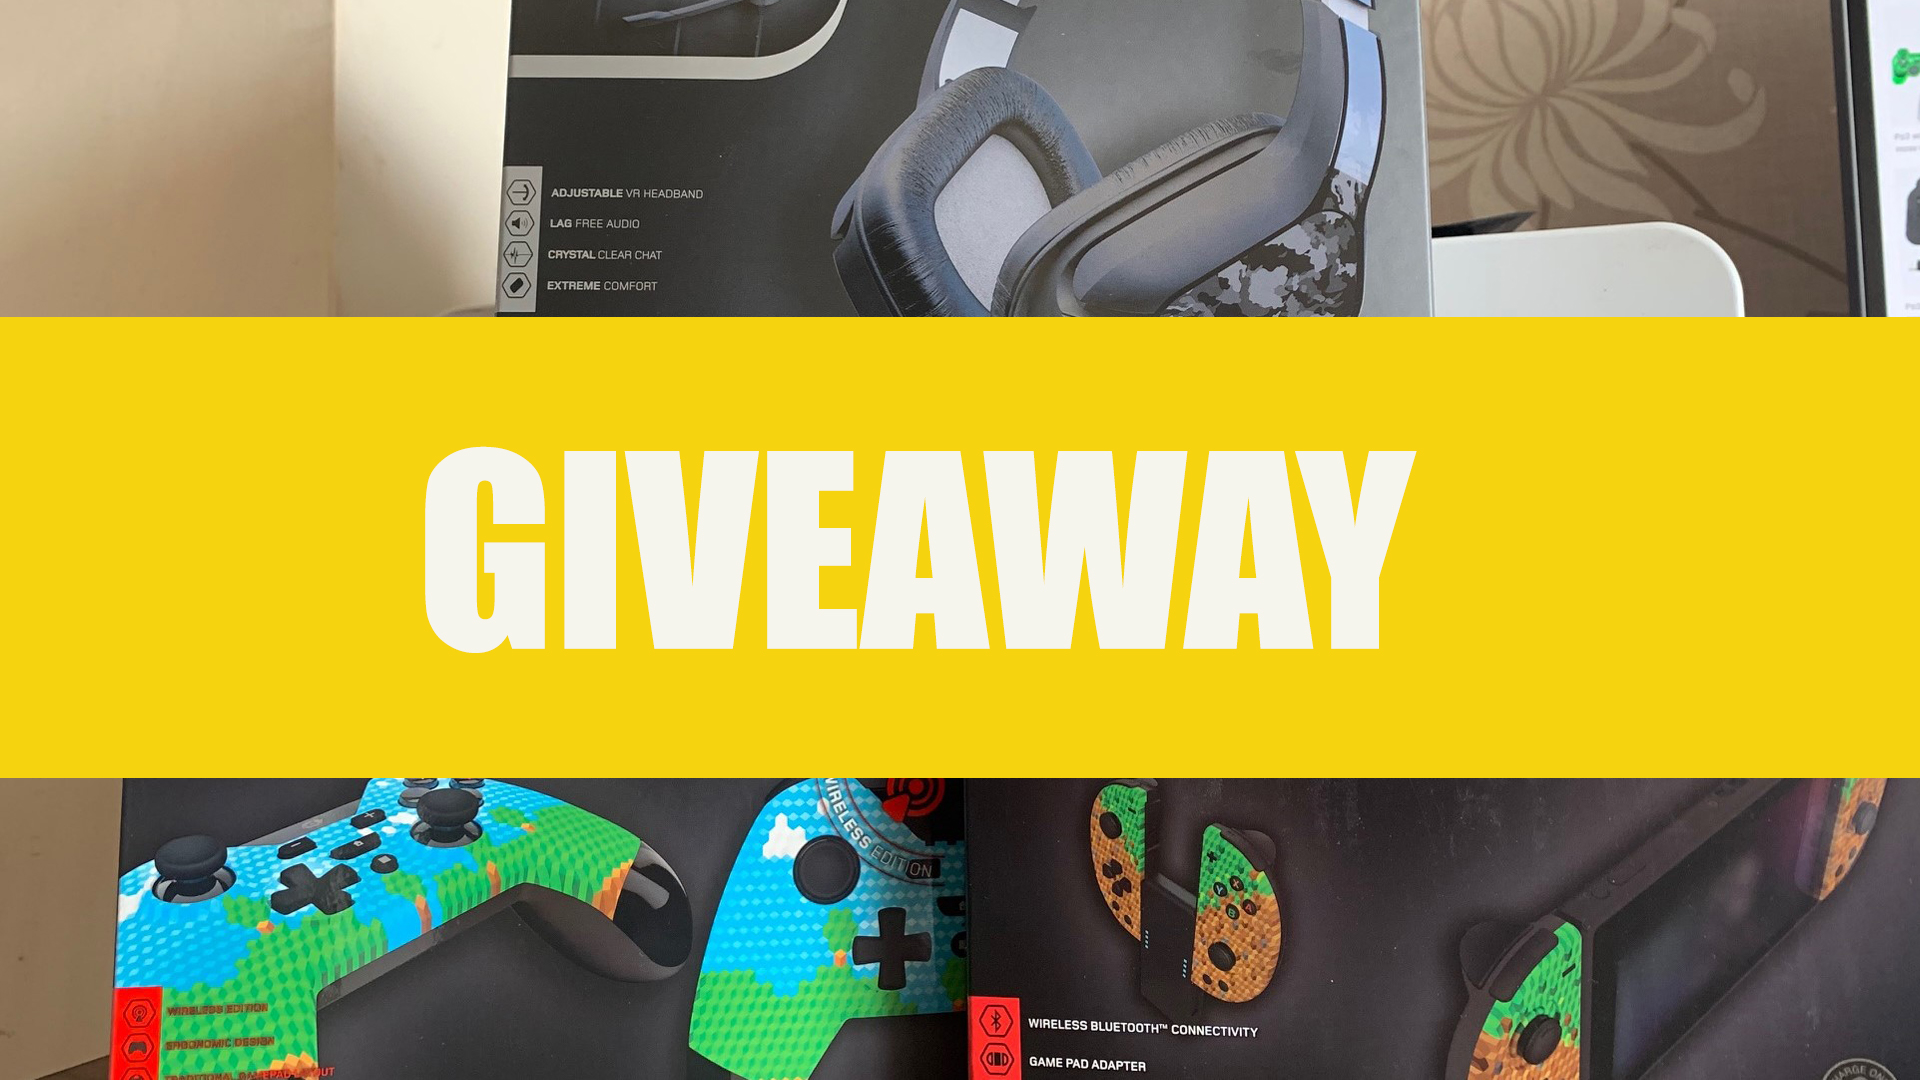 Giveaway – WIN a NSW JC-20 Controller, WX4 Premium Controller or a HC2 Stereo Headset from the new Gioteck Decal Range